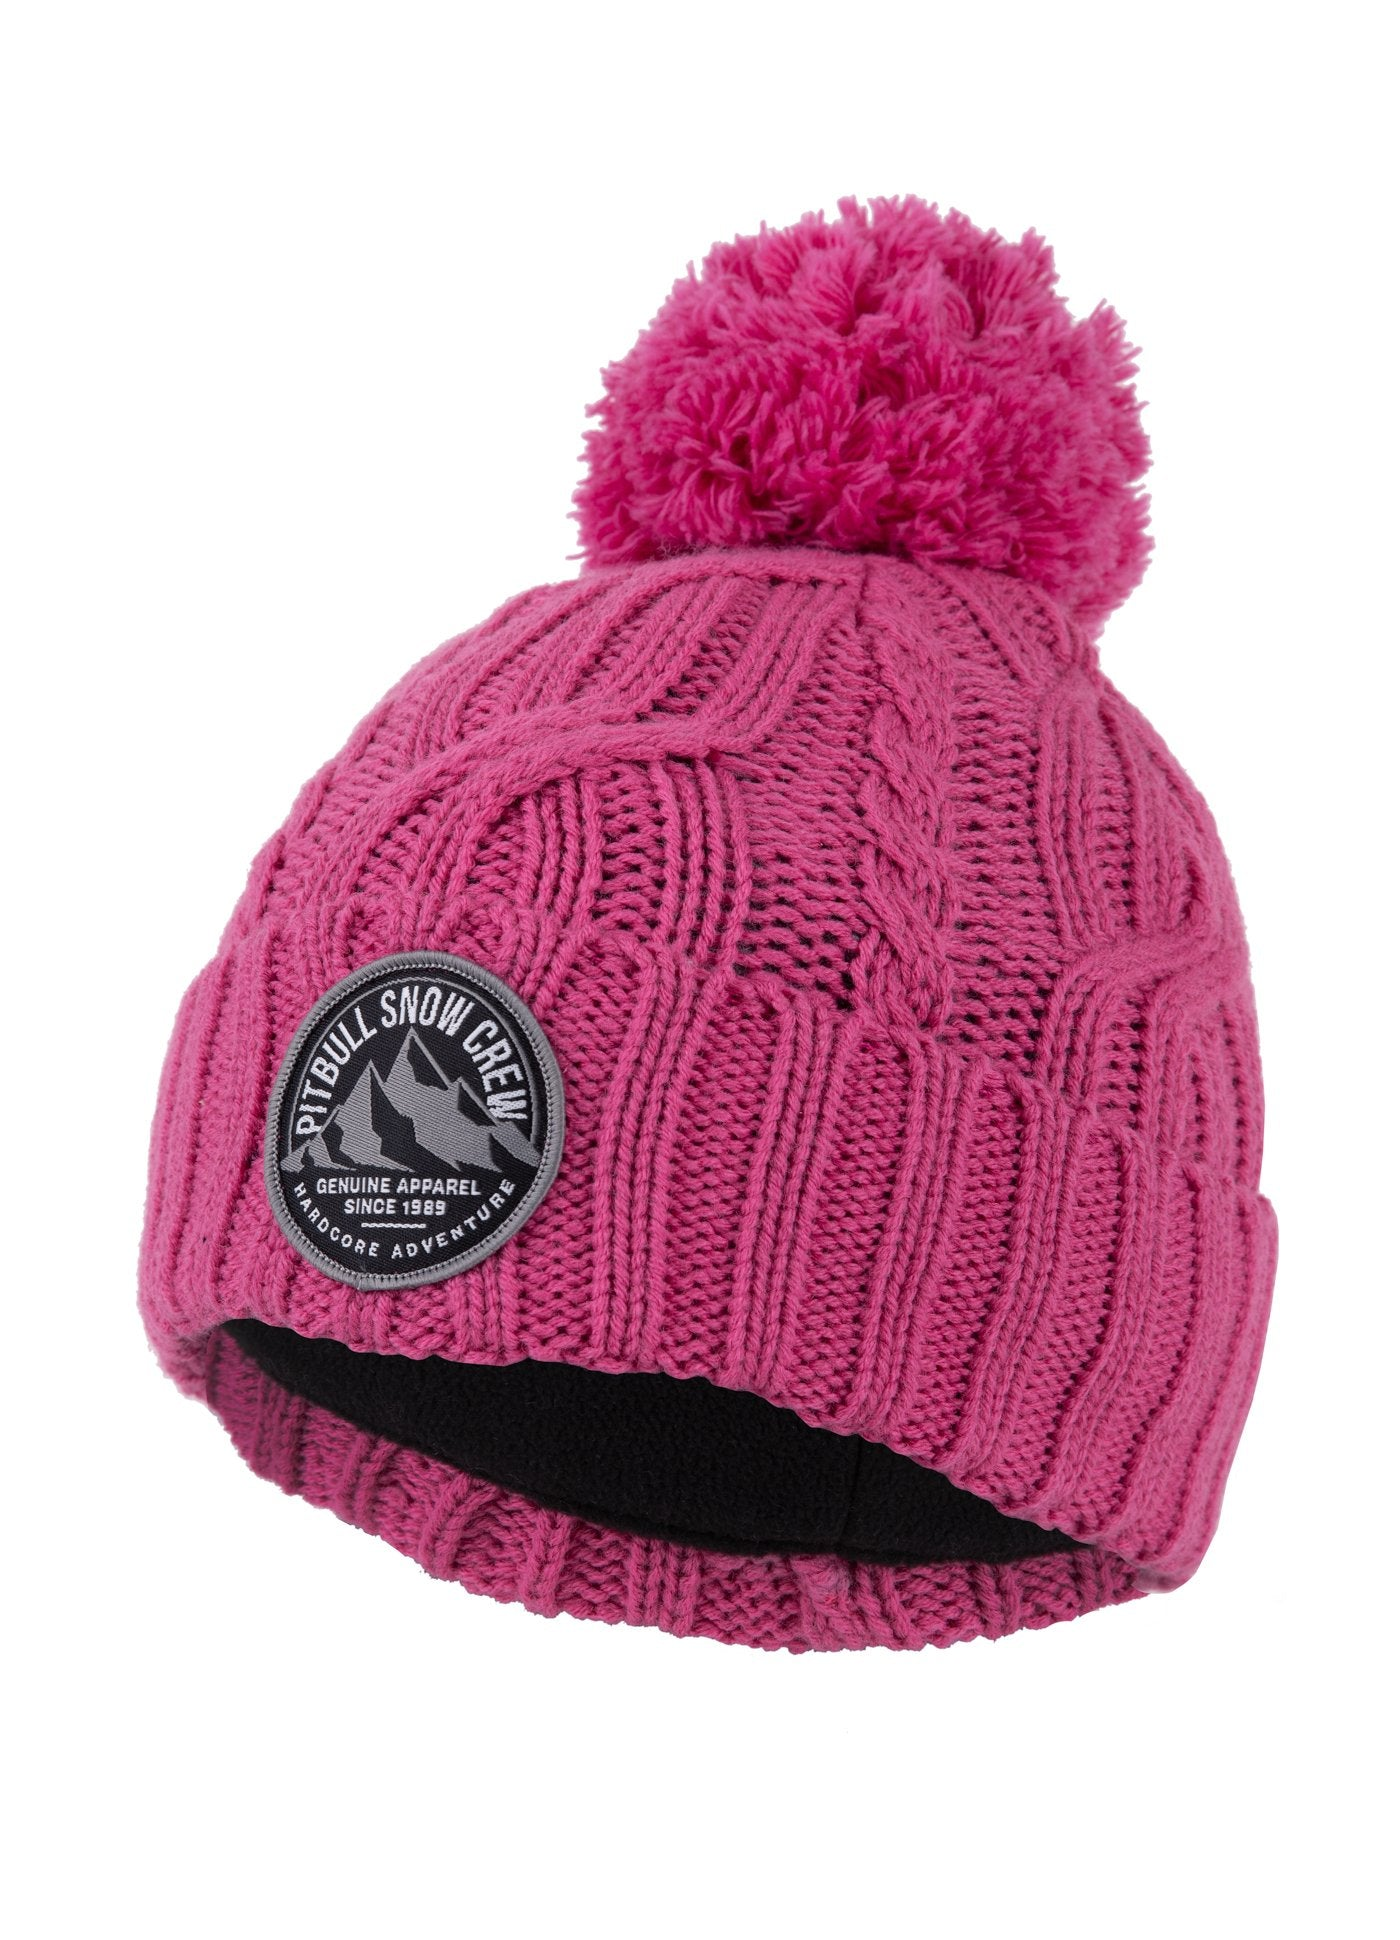 """SNOW CREW"" Winter Beanie Pink - Pitbull West Coast U.S.A."